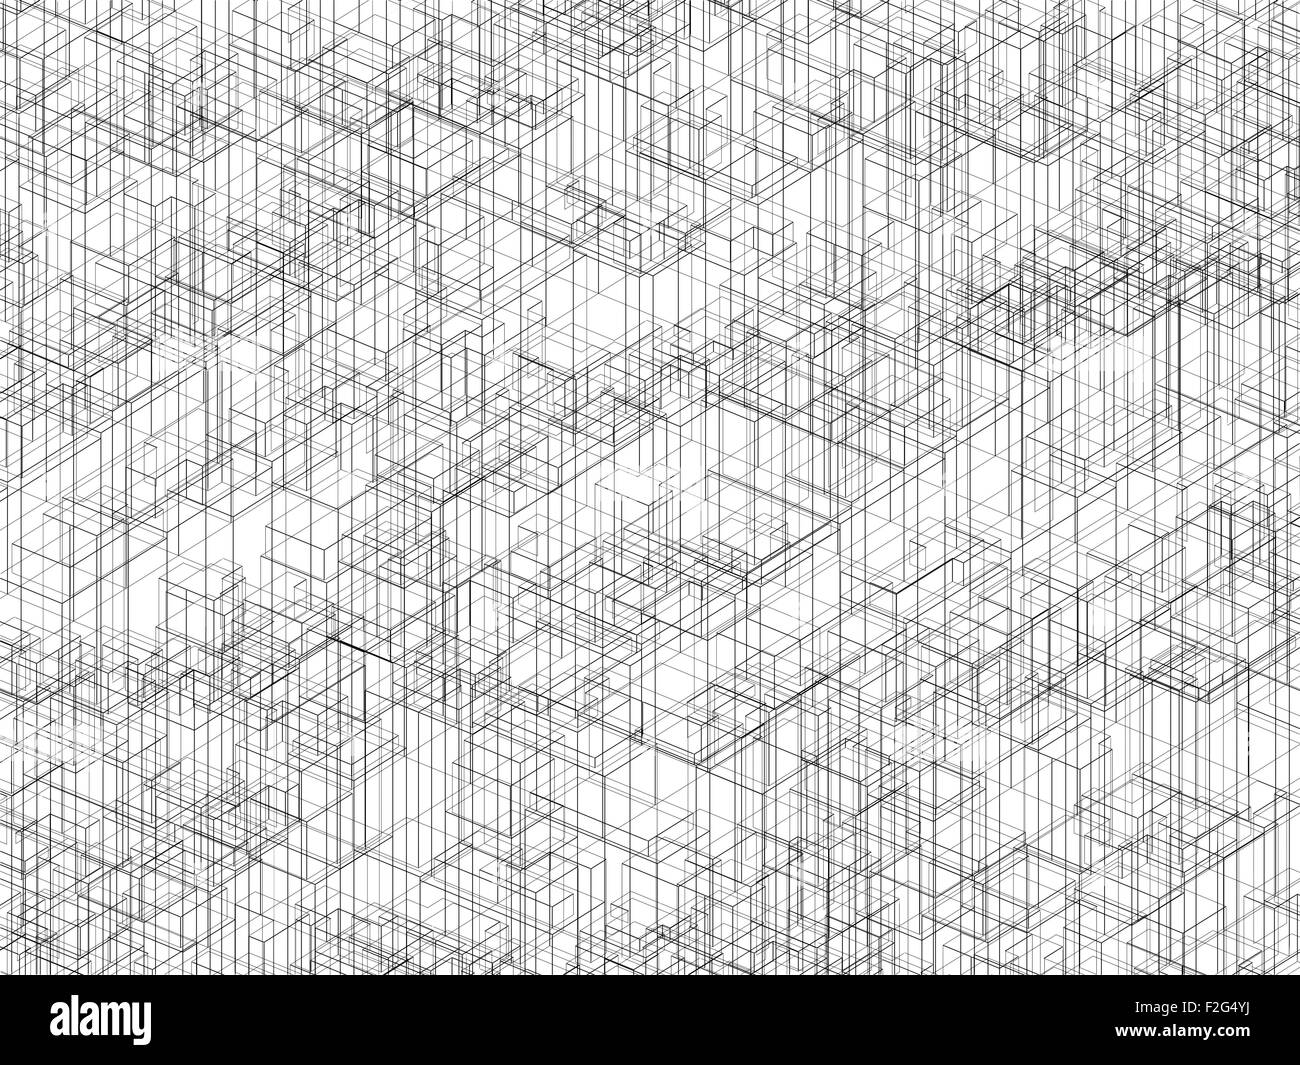 Wire Frame Model Black and White Stock Photos & Images - Alamy